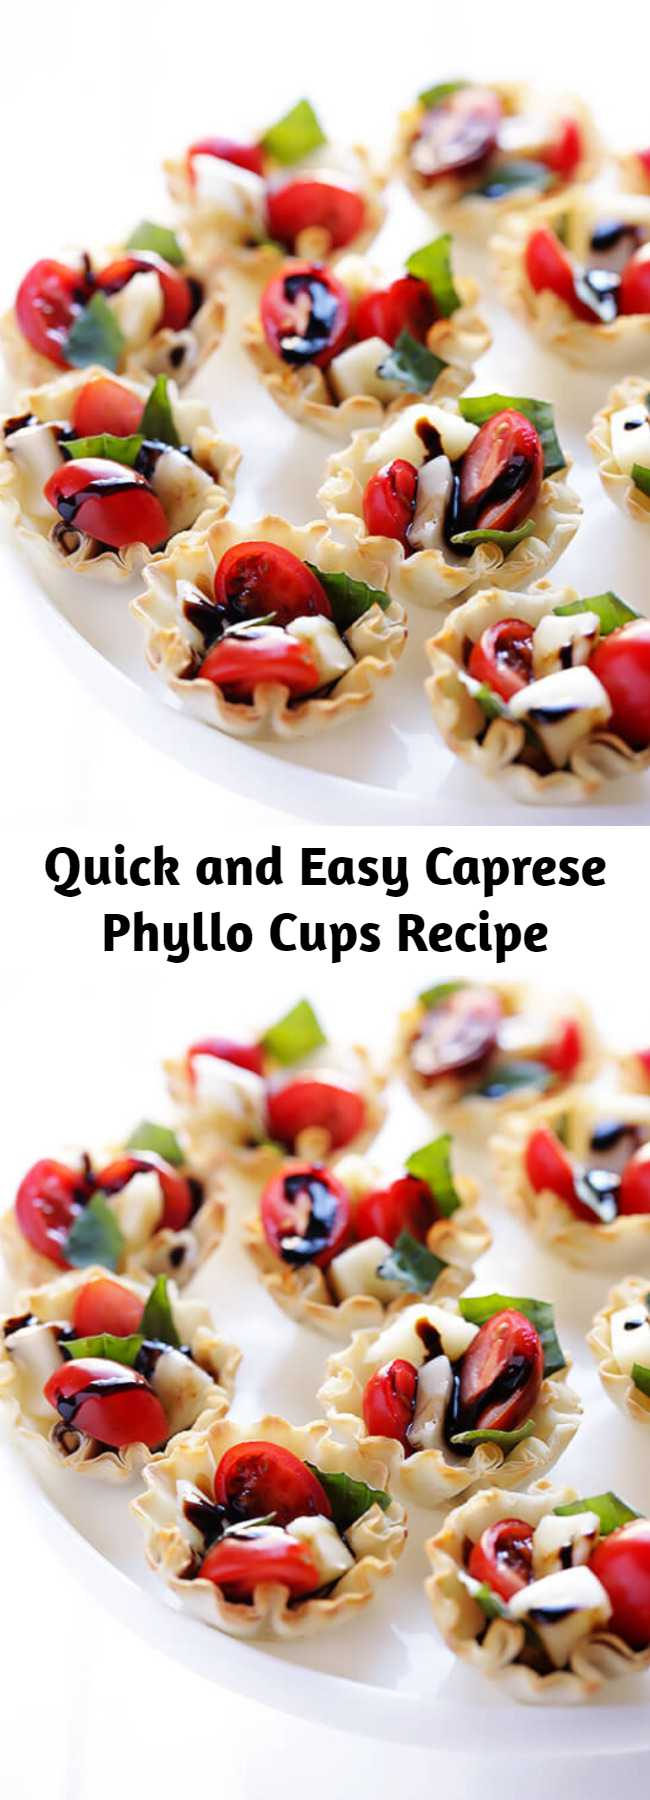 Quick and Easy Caprese Phyllo Cups Recipe - All you need are 5 ingredients to make these easy Phyllo Caprese Cups. They are the perfect appetizer!